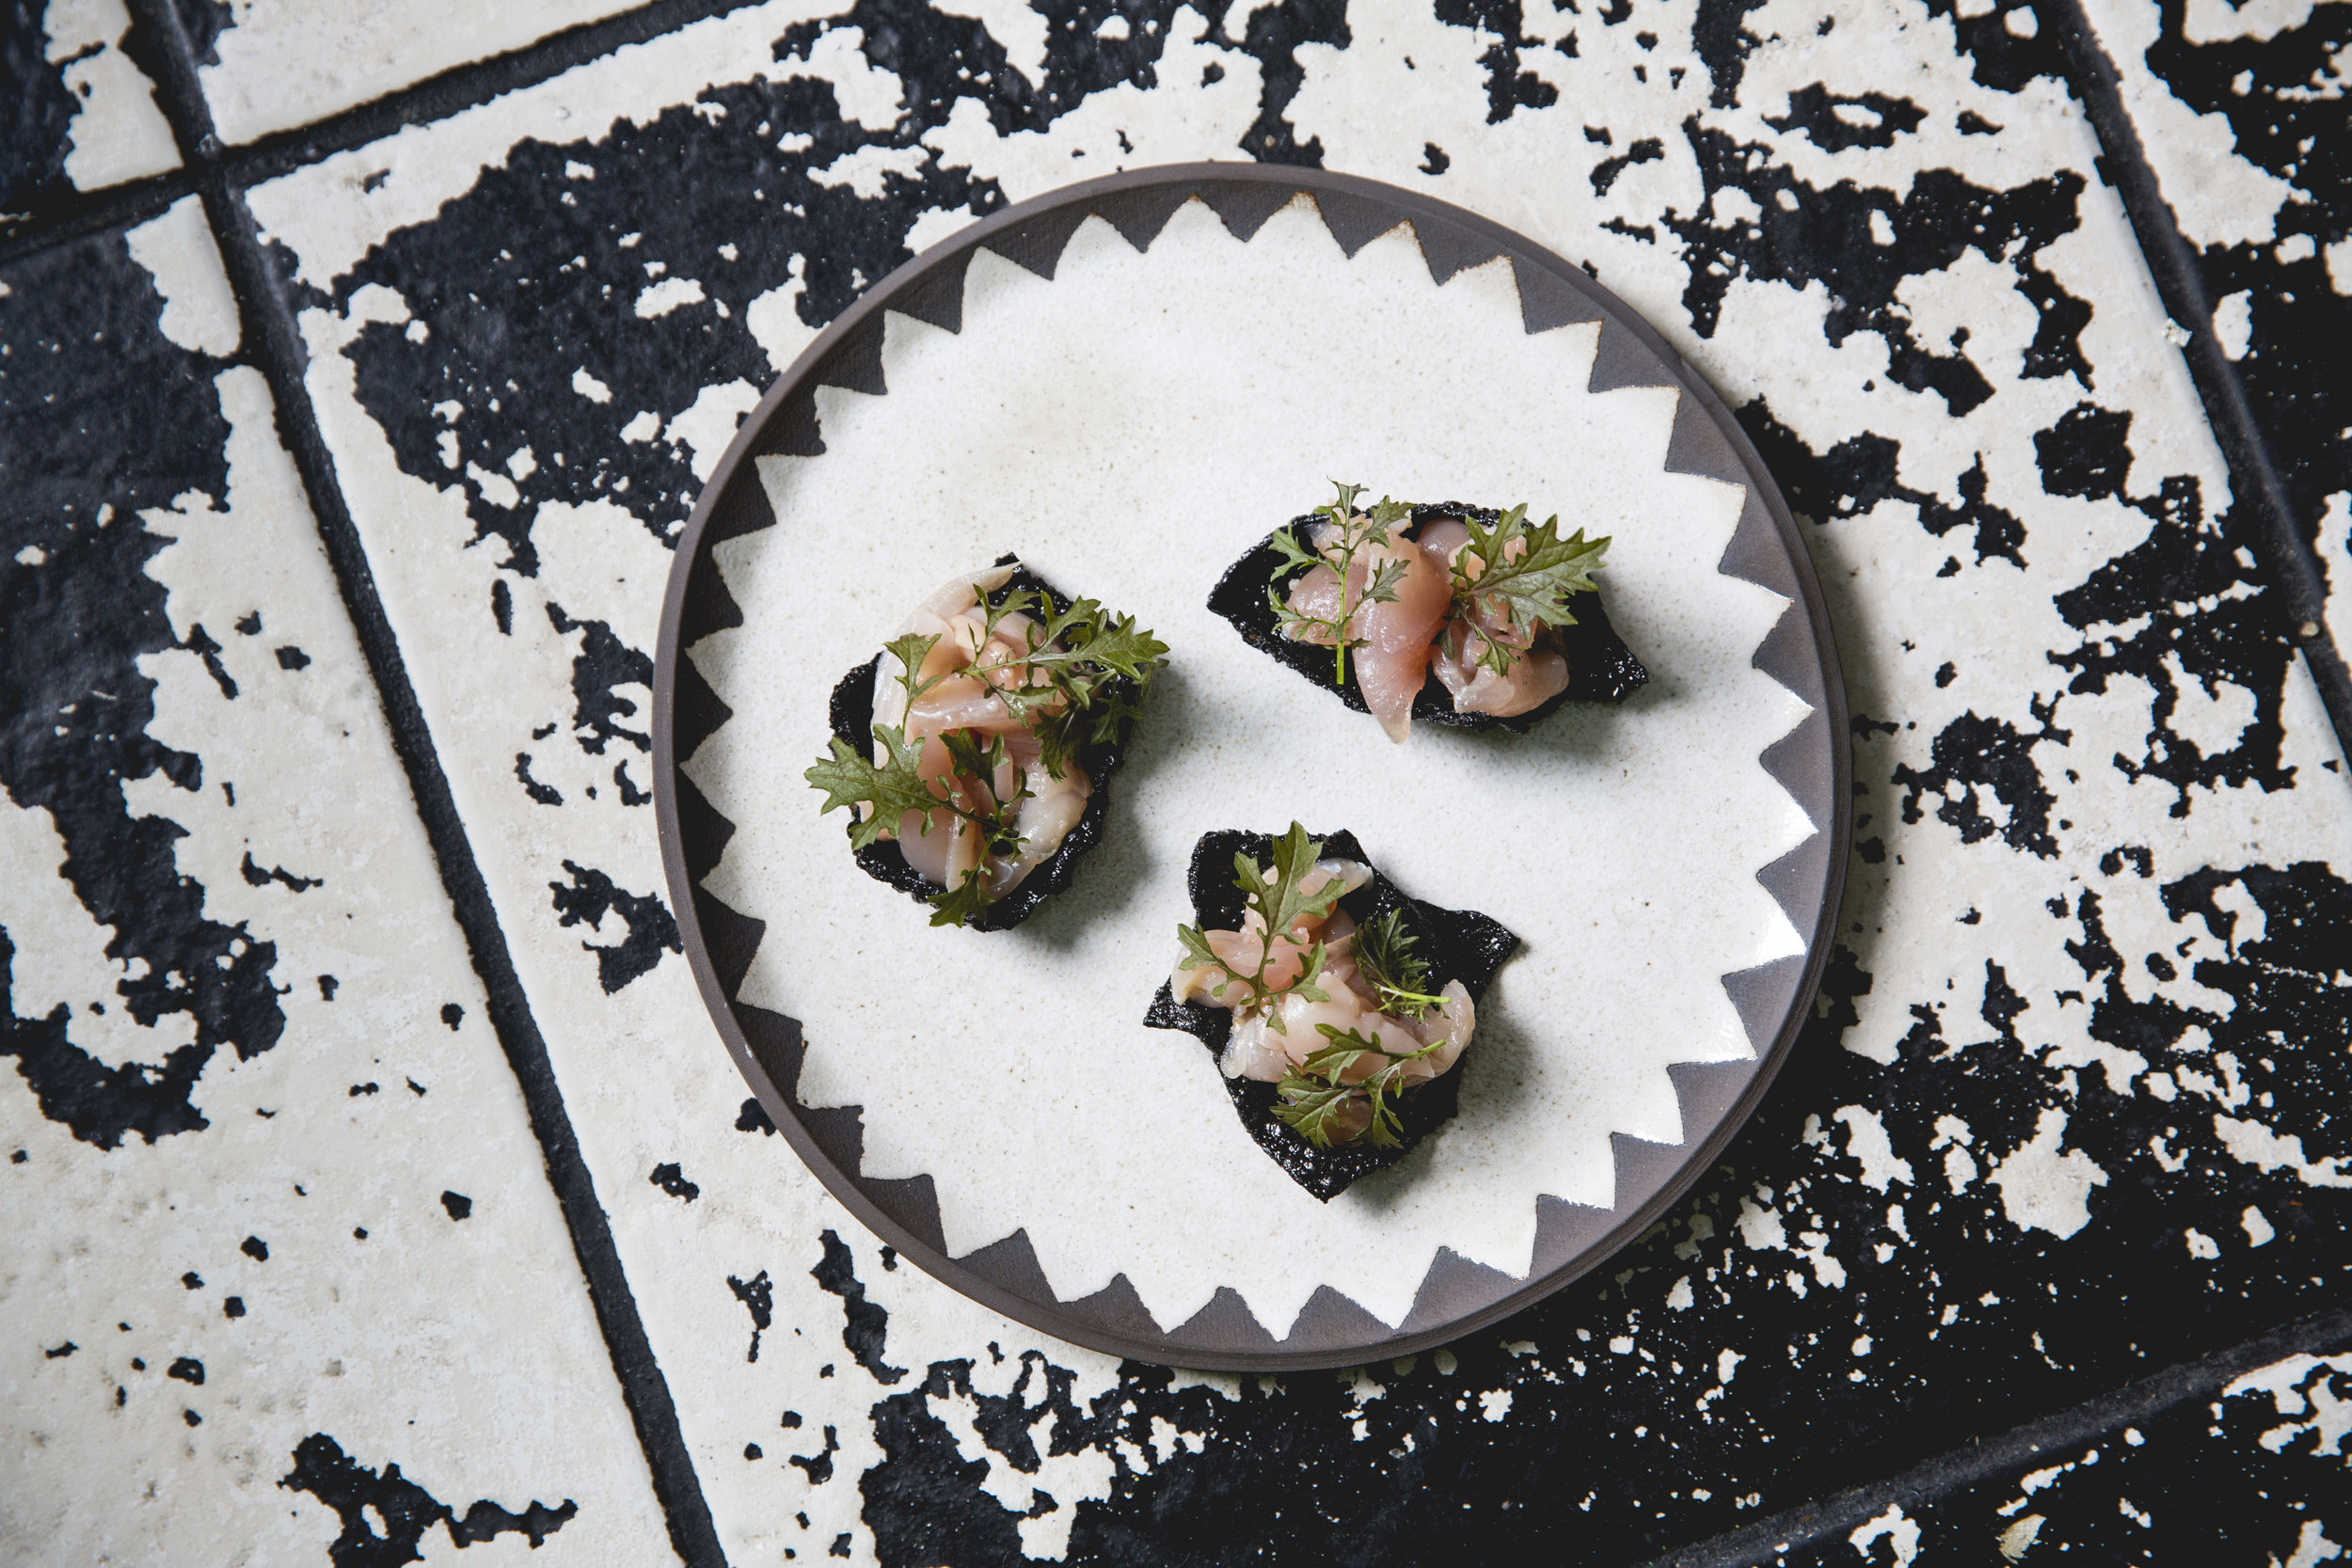 Black Boom plate. Mackerel dressed in tosazu on a squid ink cracker with mustard frill.